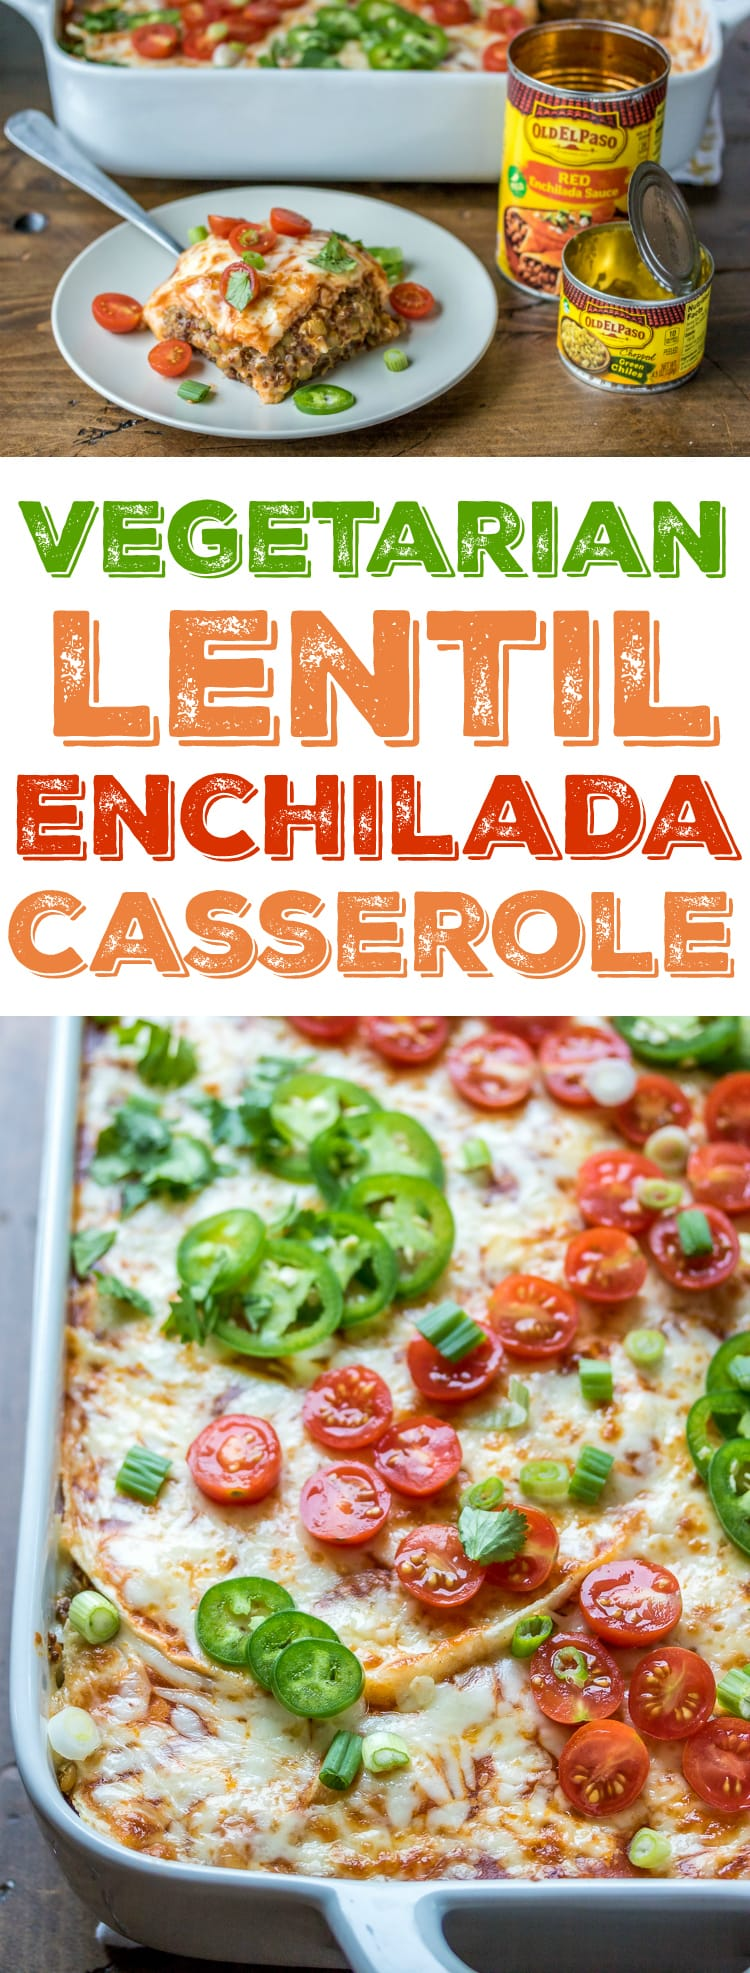 For a meatless alternative to traditional enchiladas, whip up this easy Lentil Enchilada Casserole!